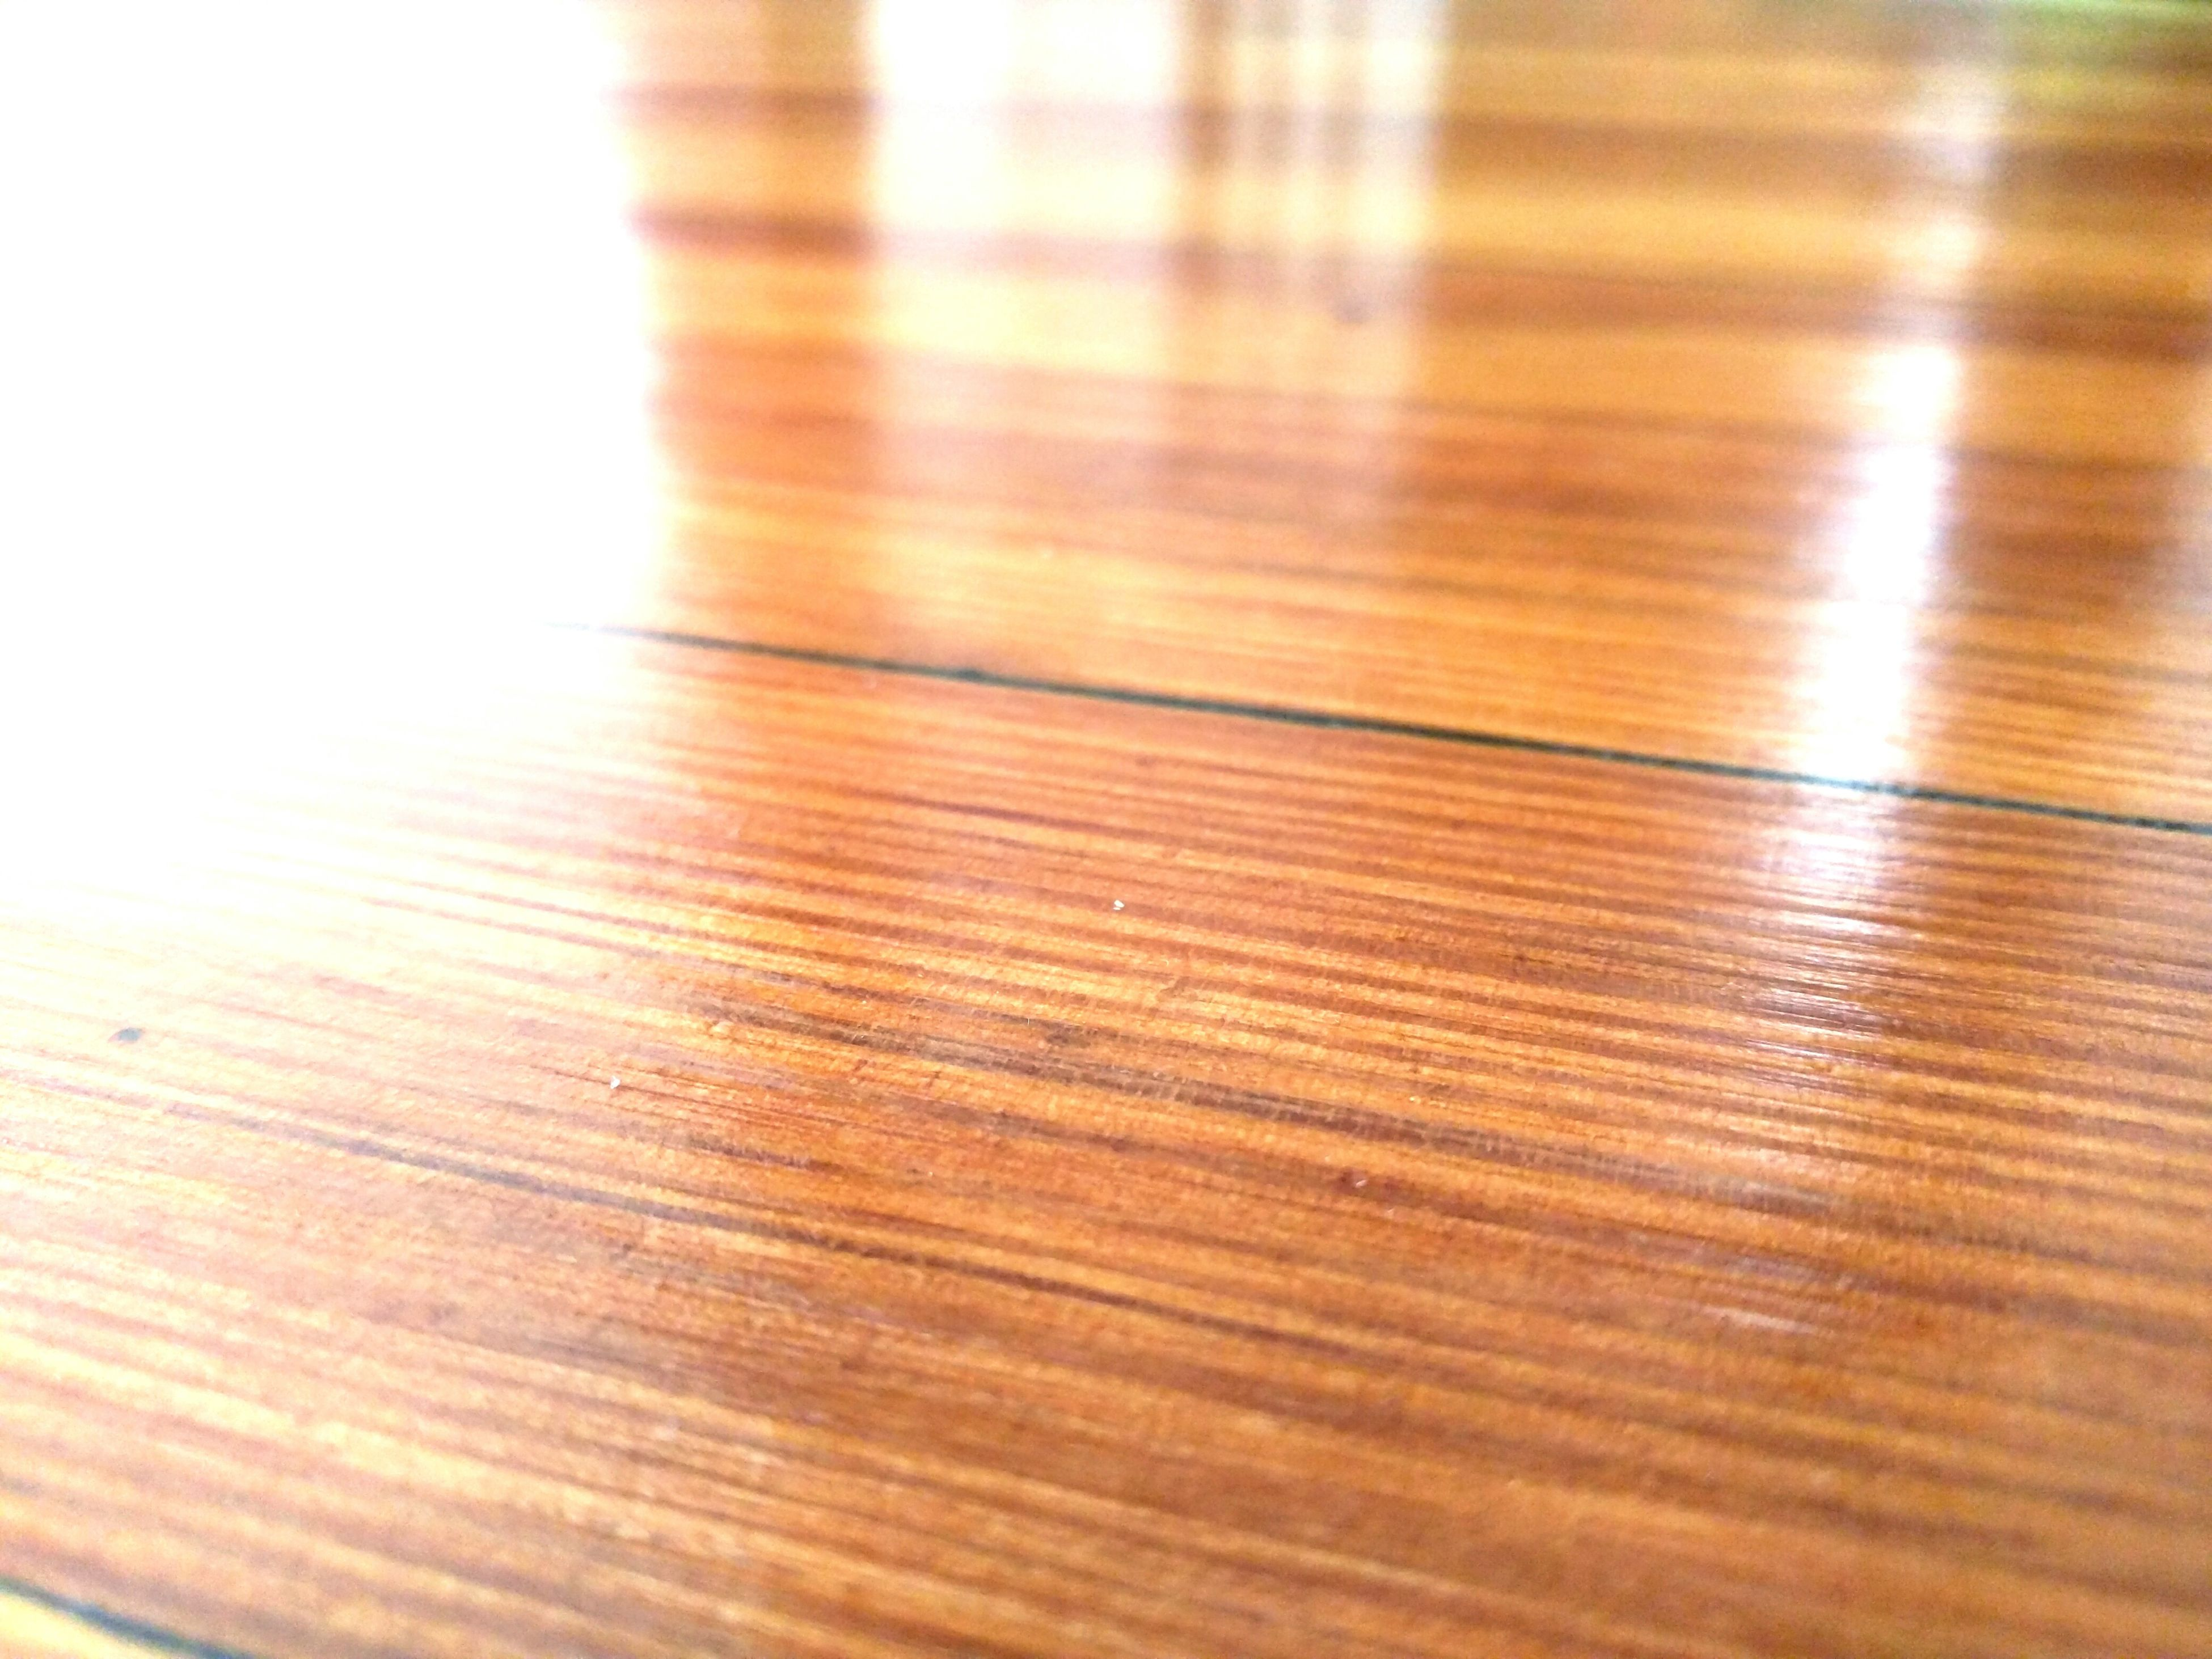 wood - material, wooden, close-up, wood, selective focus, textured, full frame, plank, backgrounds, pattern, no people, brown, surface level, table, indoors, nature, water, focus on foreground, natural pattern, beauty in nature